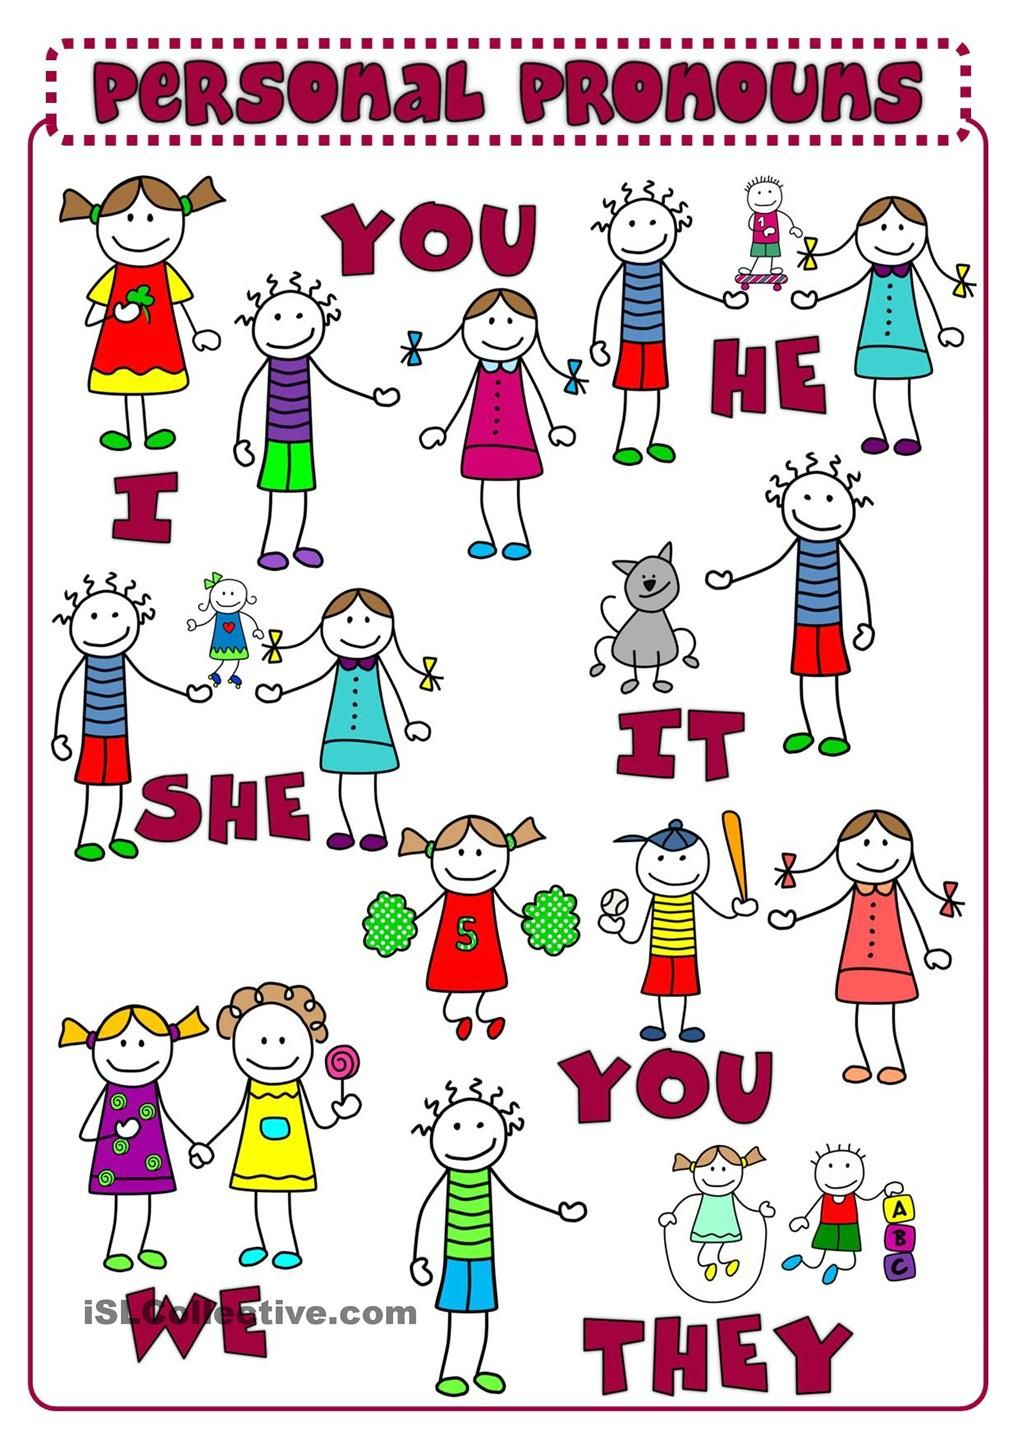 Personal pronouns clipart 2 » Clipart Station.